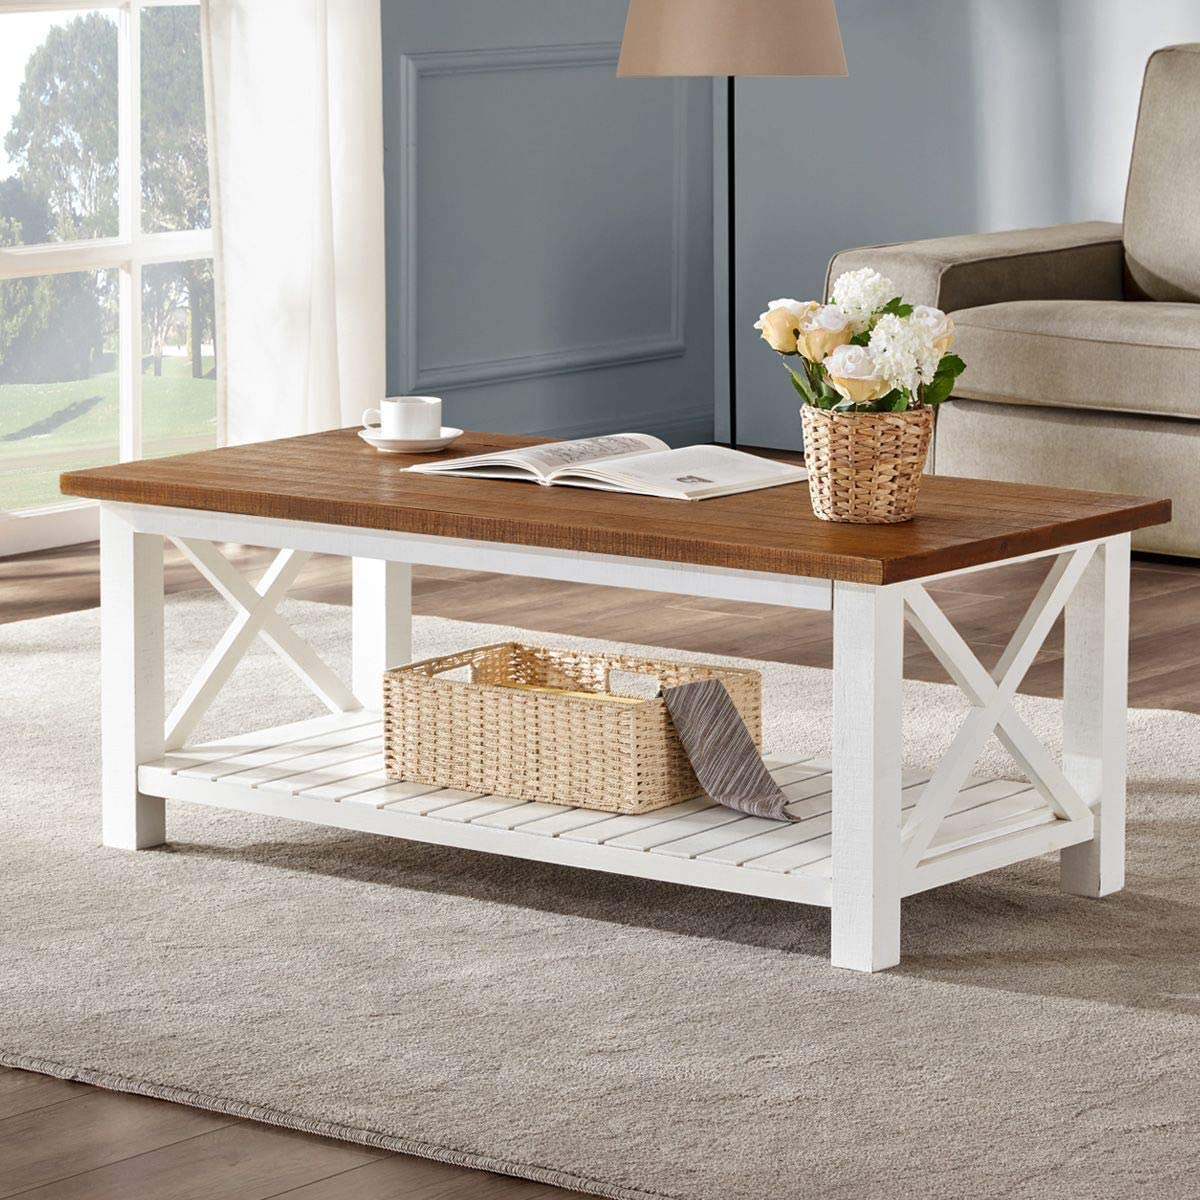 Furnichoi Farmhouse Coffee Table Wood Rustic Vintage Cocktail Table For Living Room With Shelf 47 White And Brown Amazon Ca Home Kitchen